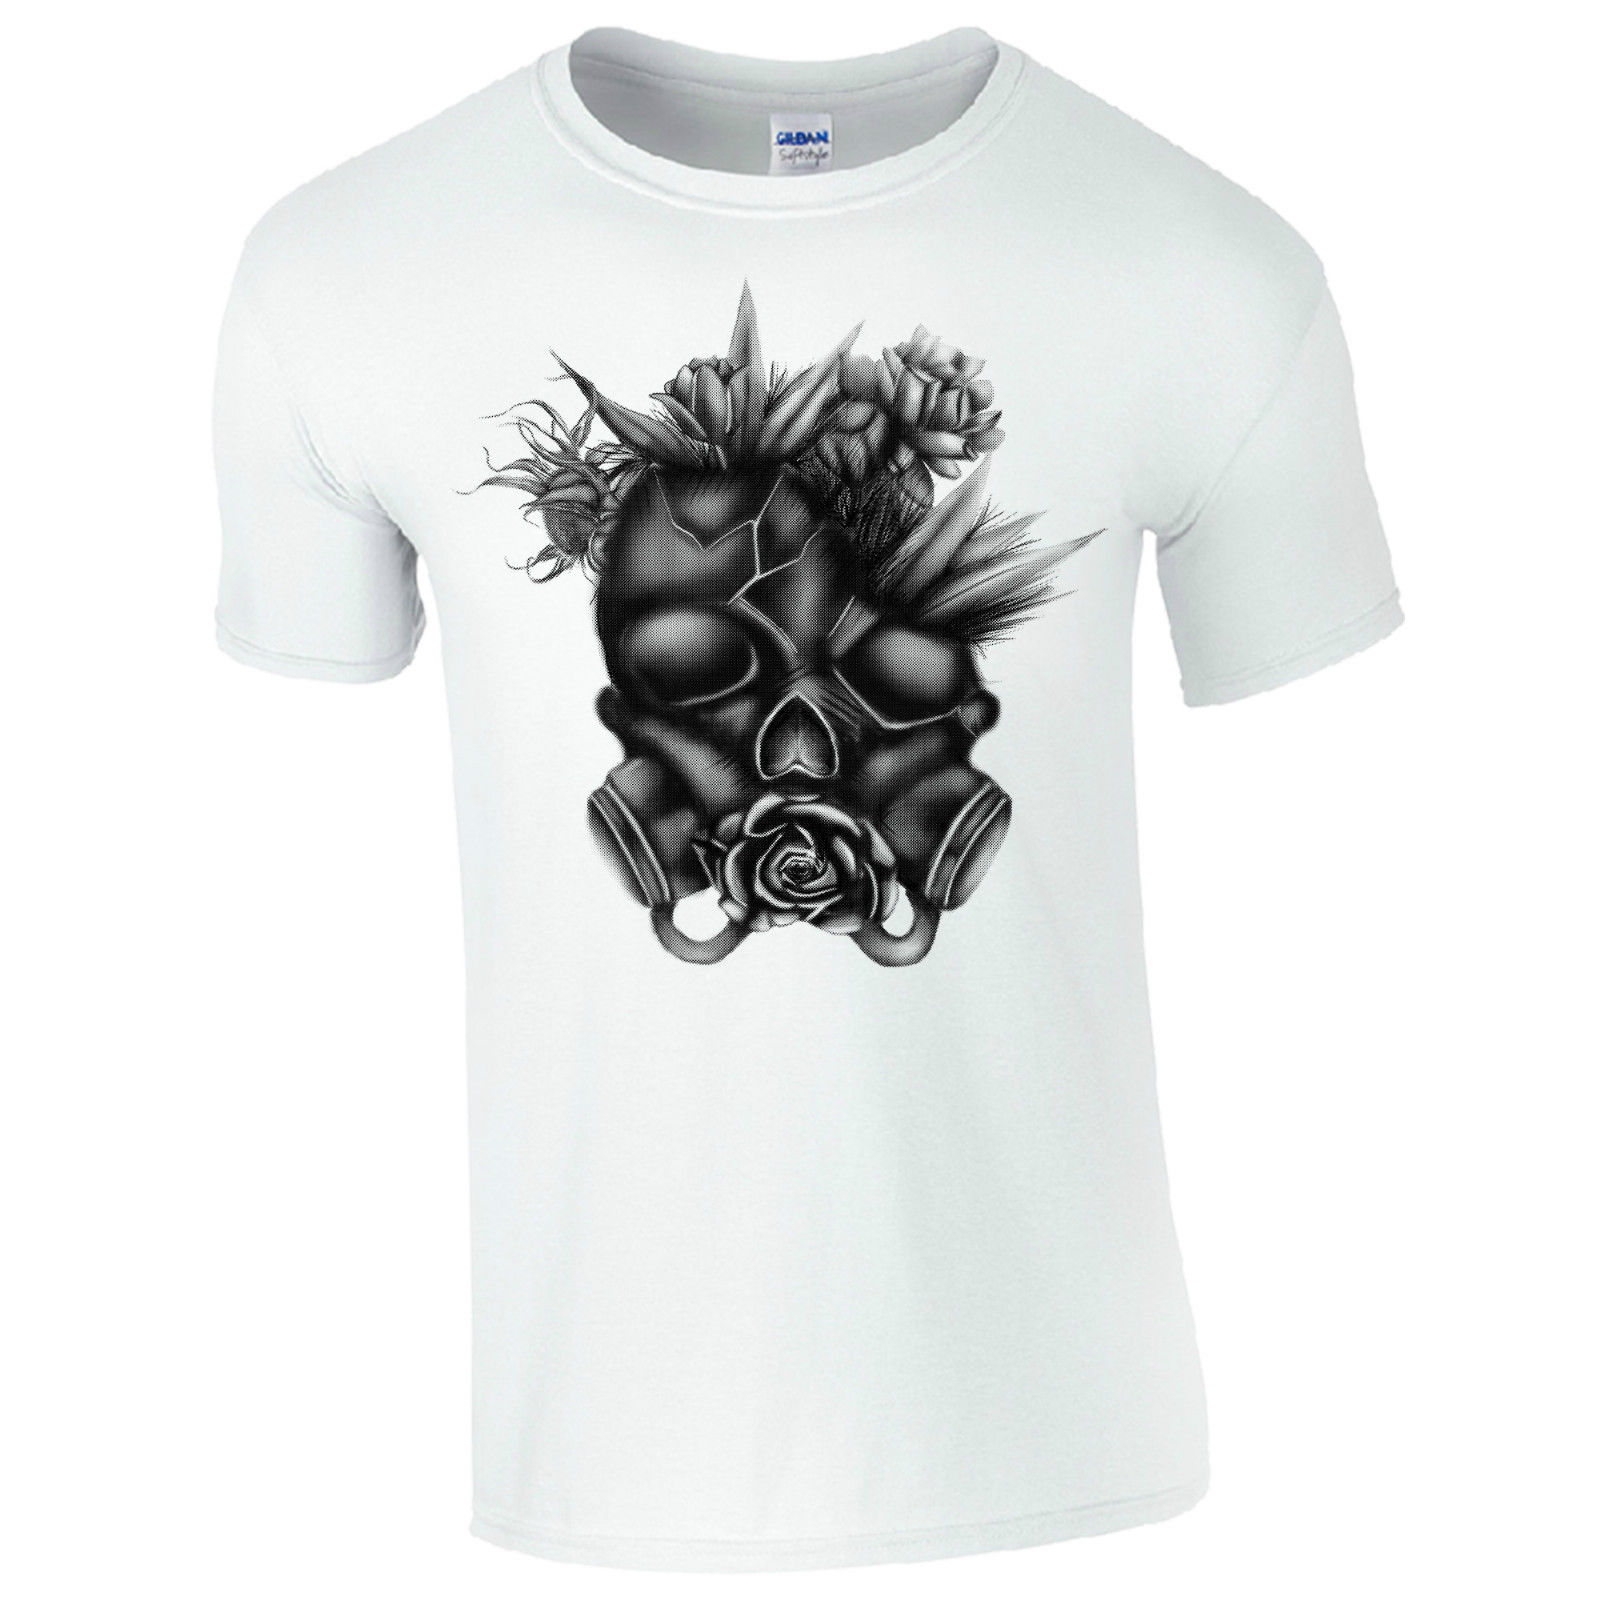 Gas Mask Skull Mens Black T-shirt Quality T Shirts Men Printing Short Sleeve O Neck Tshirt Tops Tees Printed Men T Shirt Back To Search Resultsmen's Clothing Tops & Tees